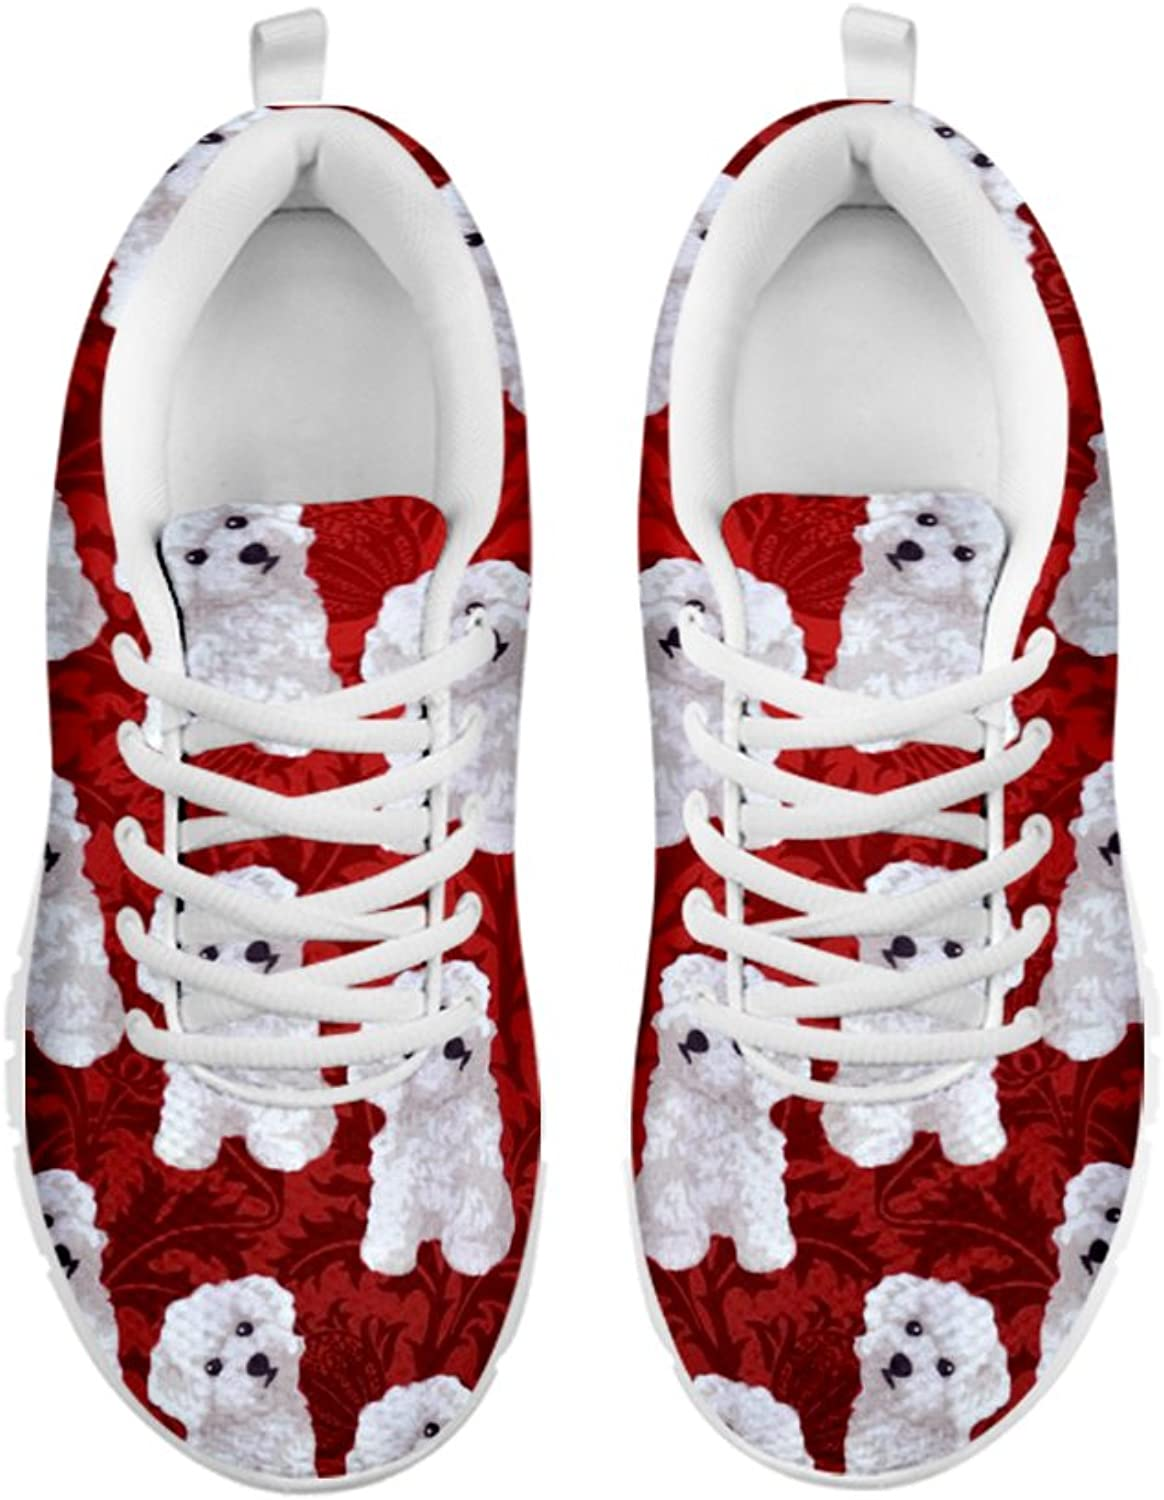 Women's Sneakers-Bichon Frise Pattern Print Sneakers for Women Running shoes White